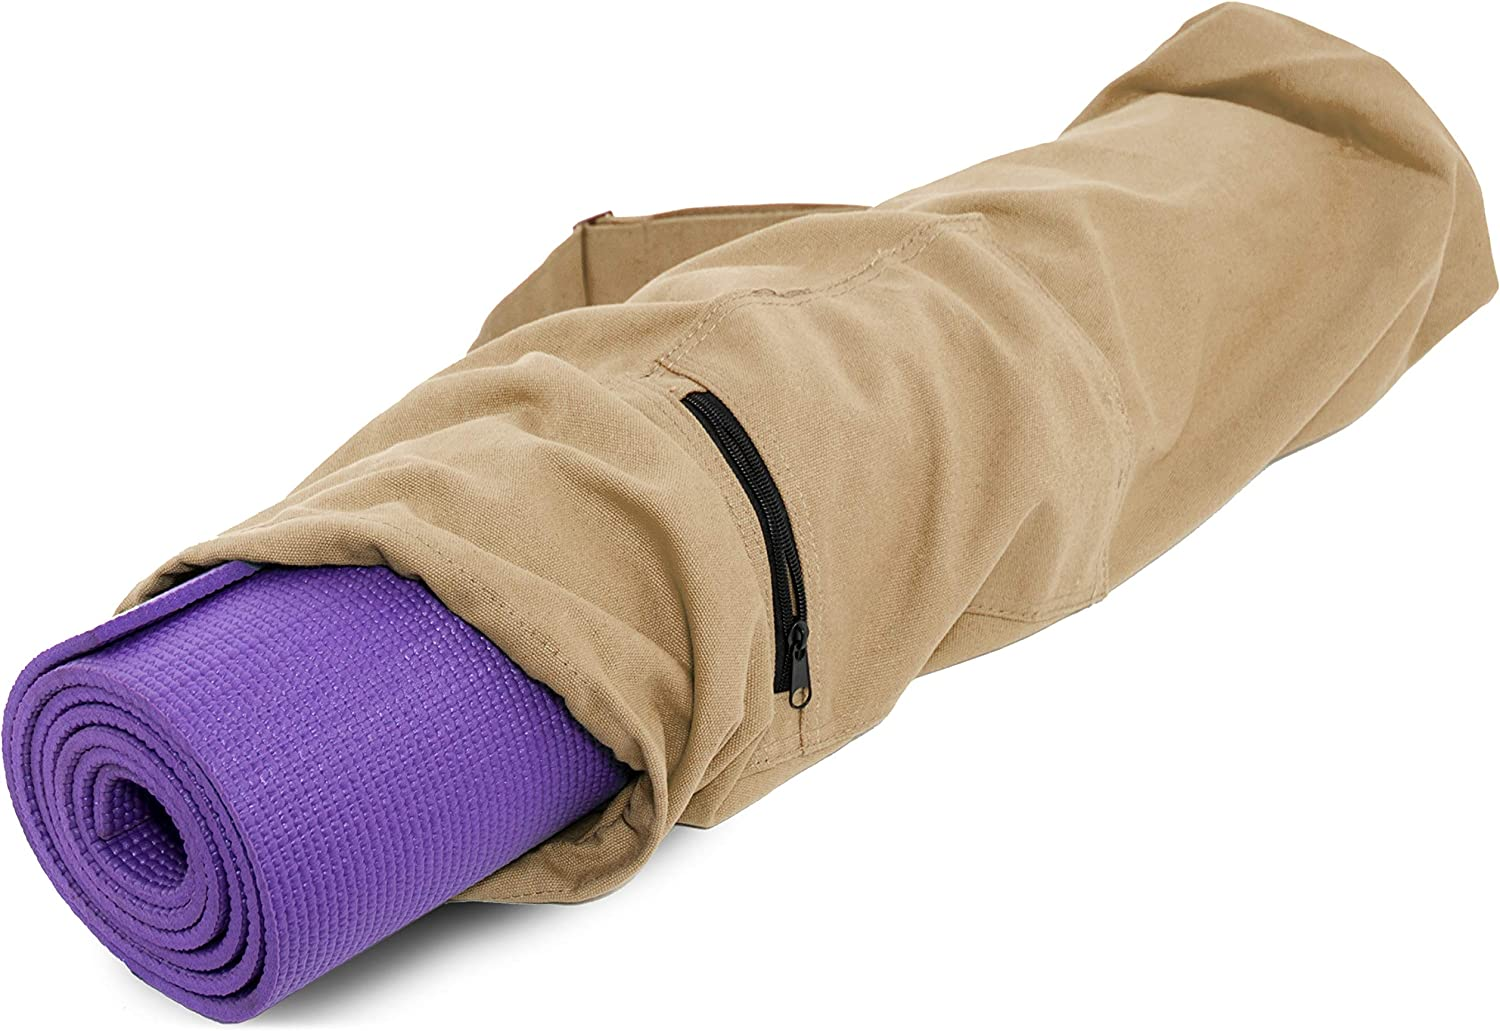 ProsourceFit Yoga Mat Bag with Side Pocket and Cinch Top, 28